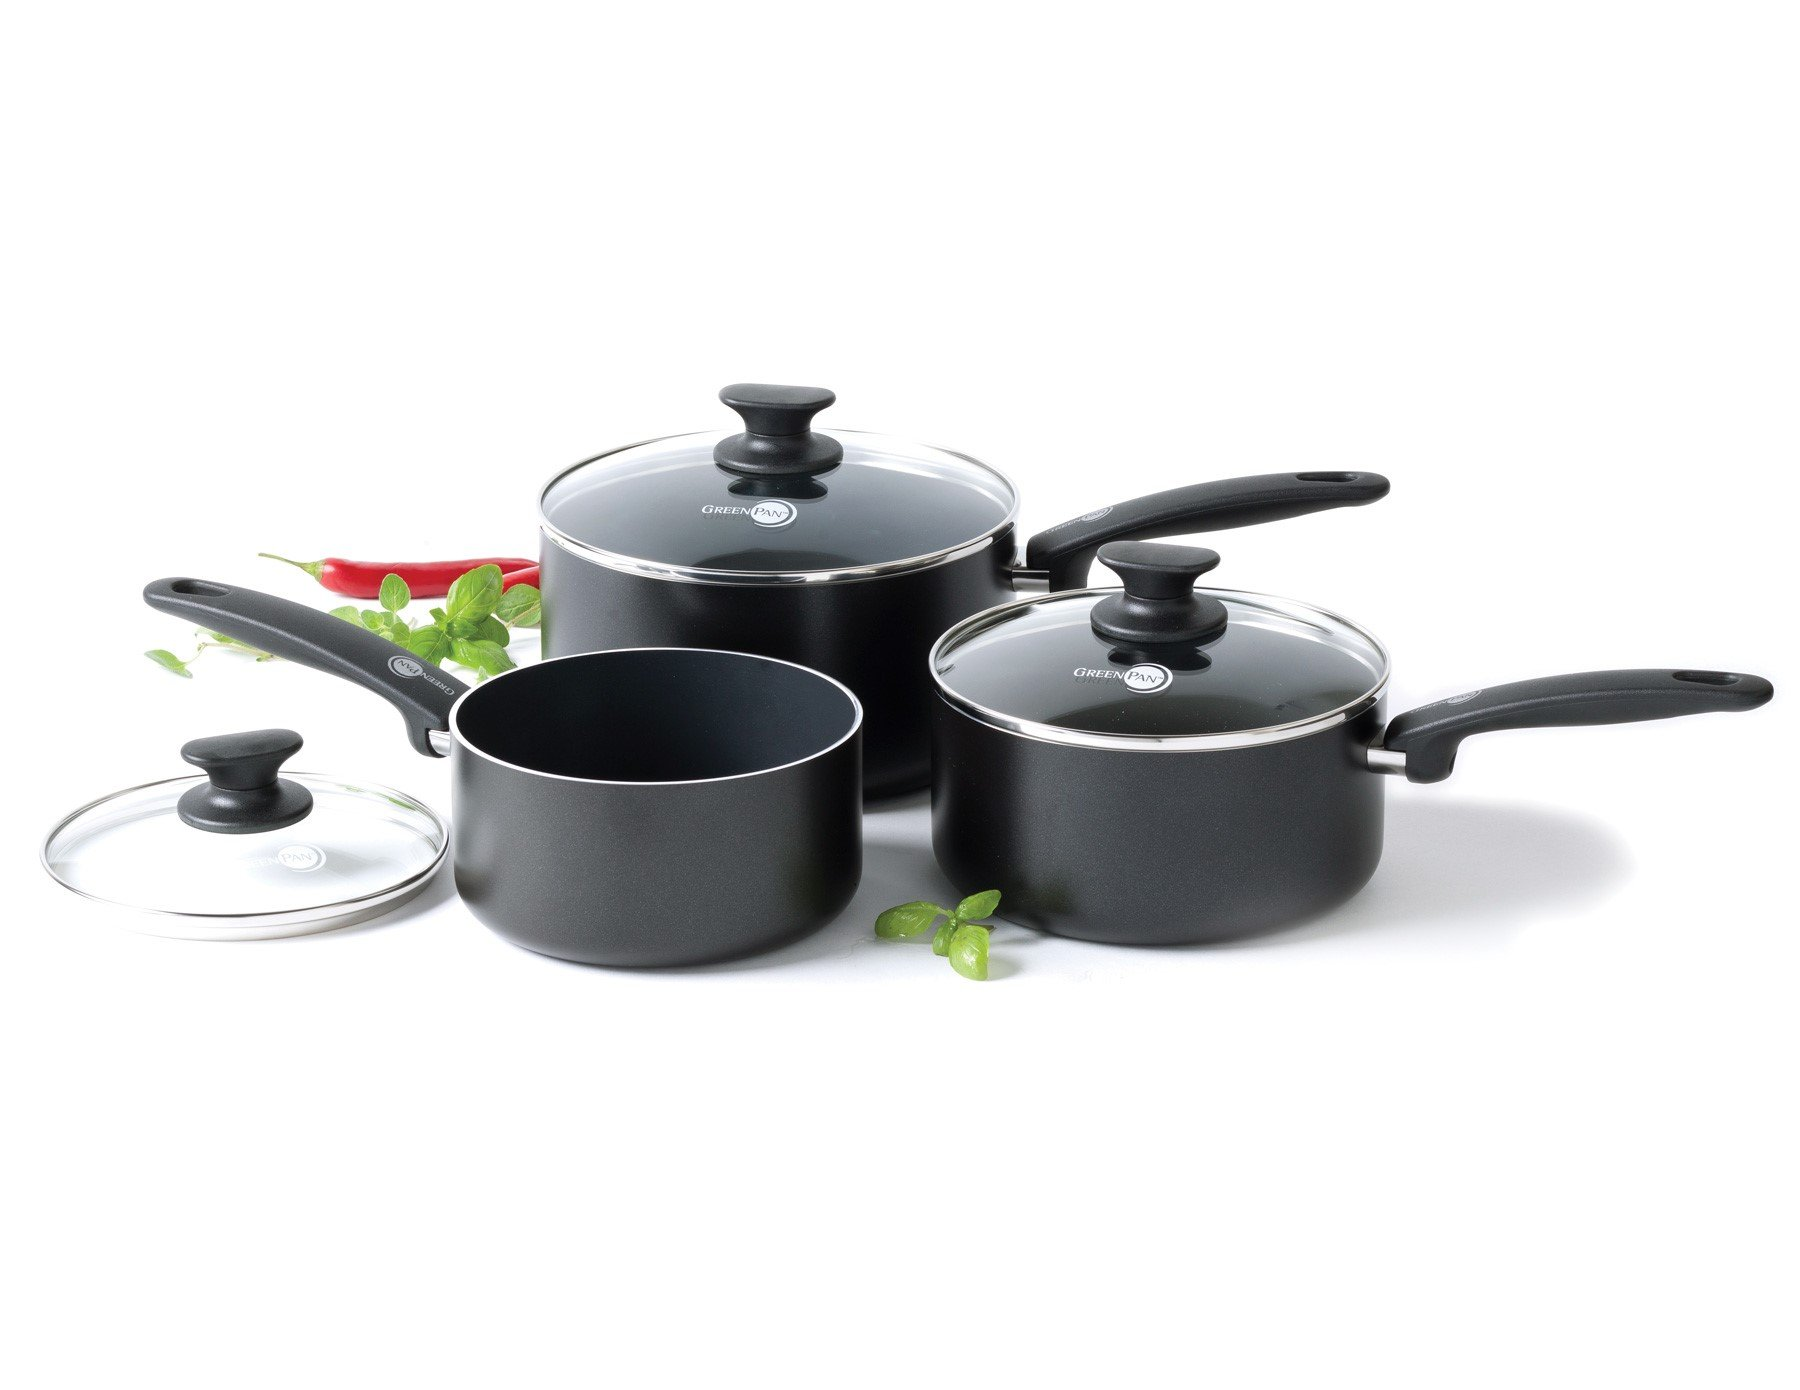 GreenPan Cambridge Healthy Ceramic Nonstick 16, 18 & 20cm Saucepan Set with Lid, 3 Pieces, Black